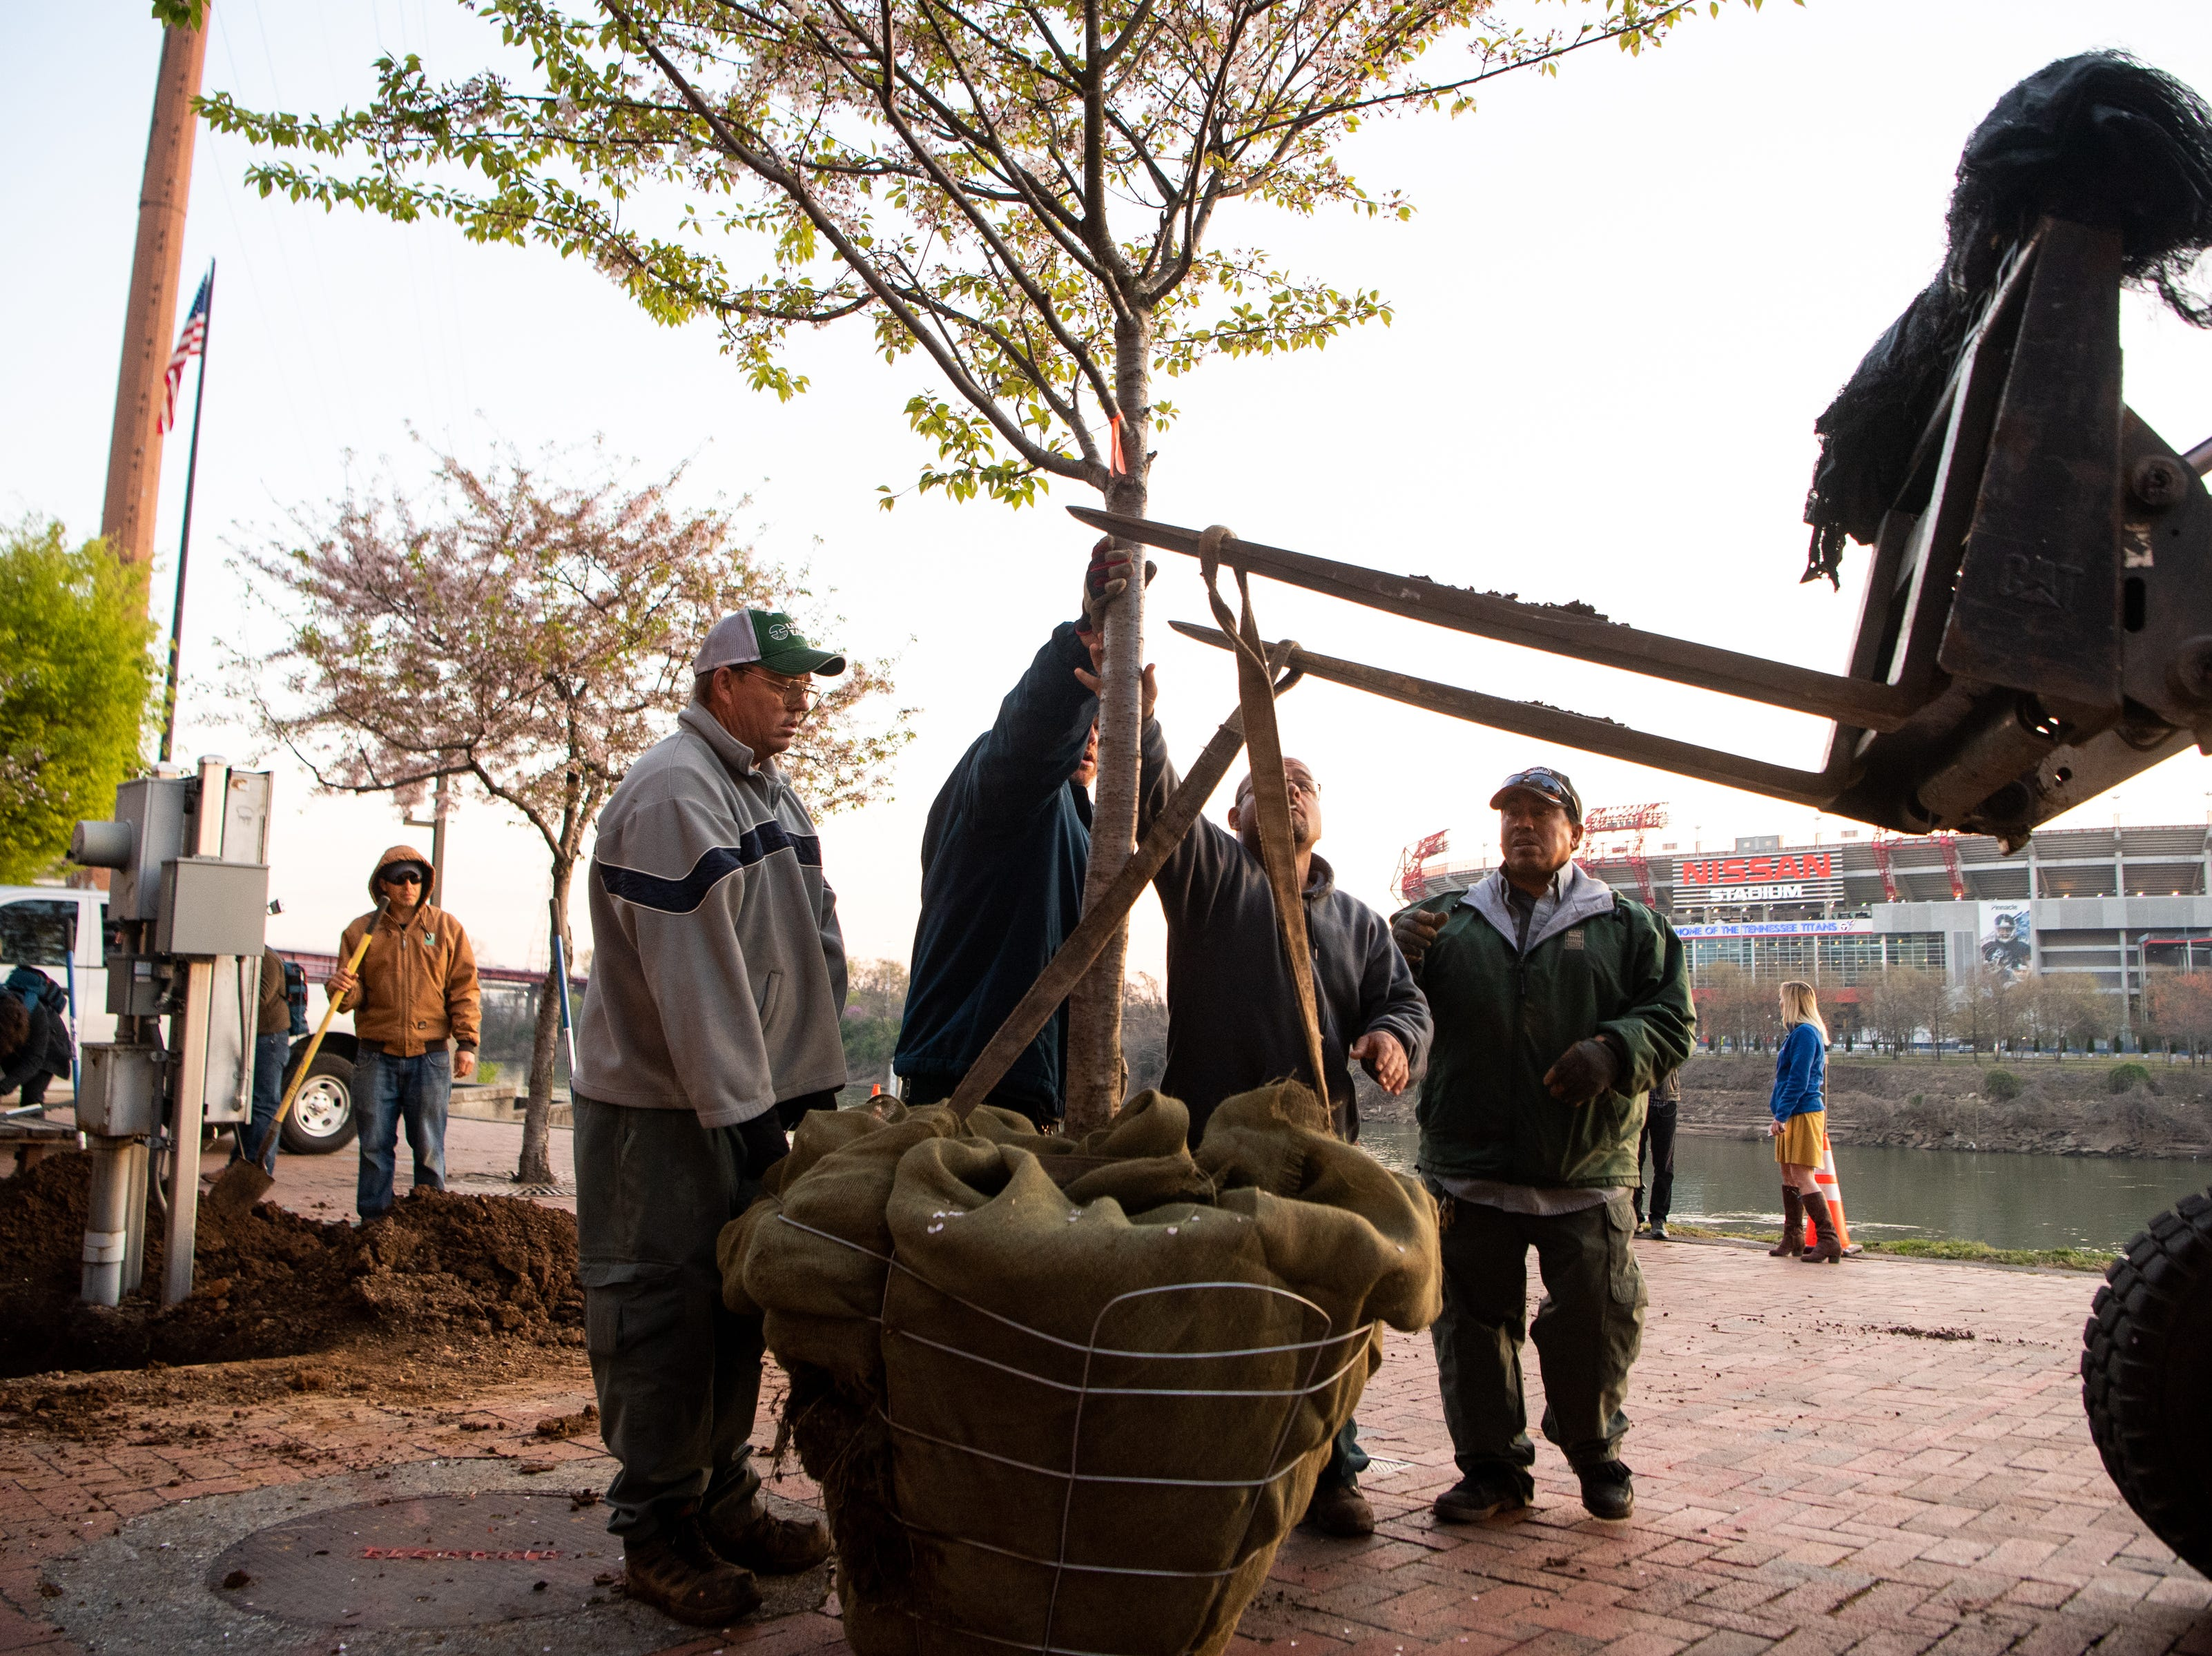 Metro Parks and Recreation workers work to lift a Yoshino Cherry tree along the riverfront Wednesday, April 3, 2019, in Nashville, Tenn. The City is transplanting the trees after protest of chopping the trees down to make room for a giant stage for the upcoming NFL Draft.